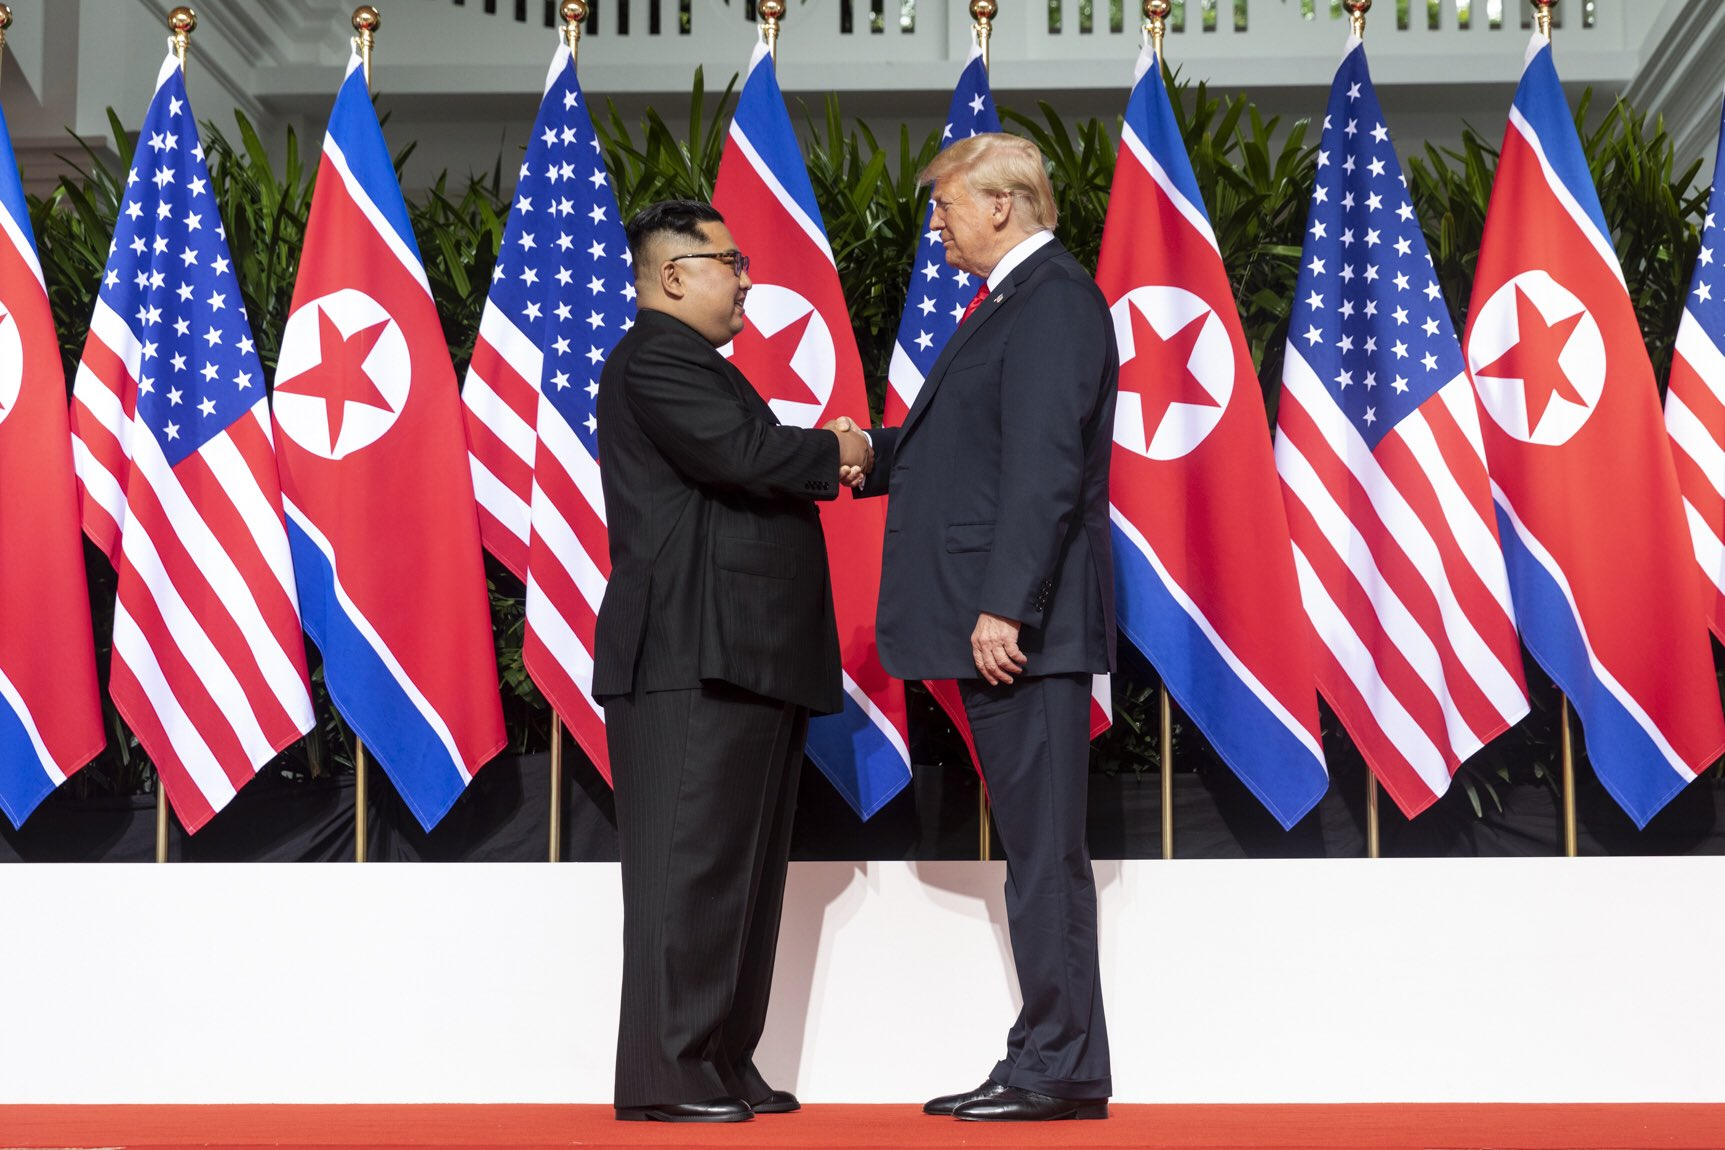 The Spectacle and Substance of the Trump-Kim Meeting